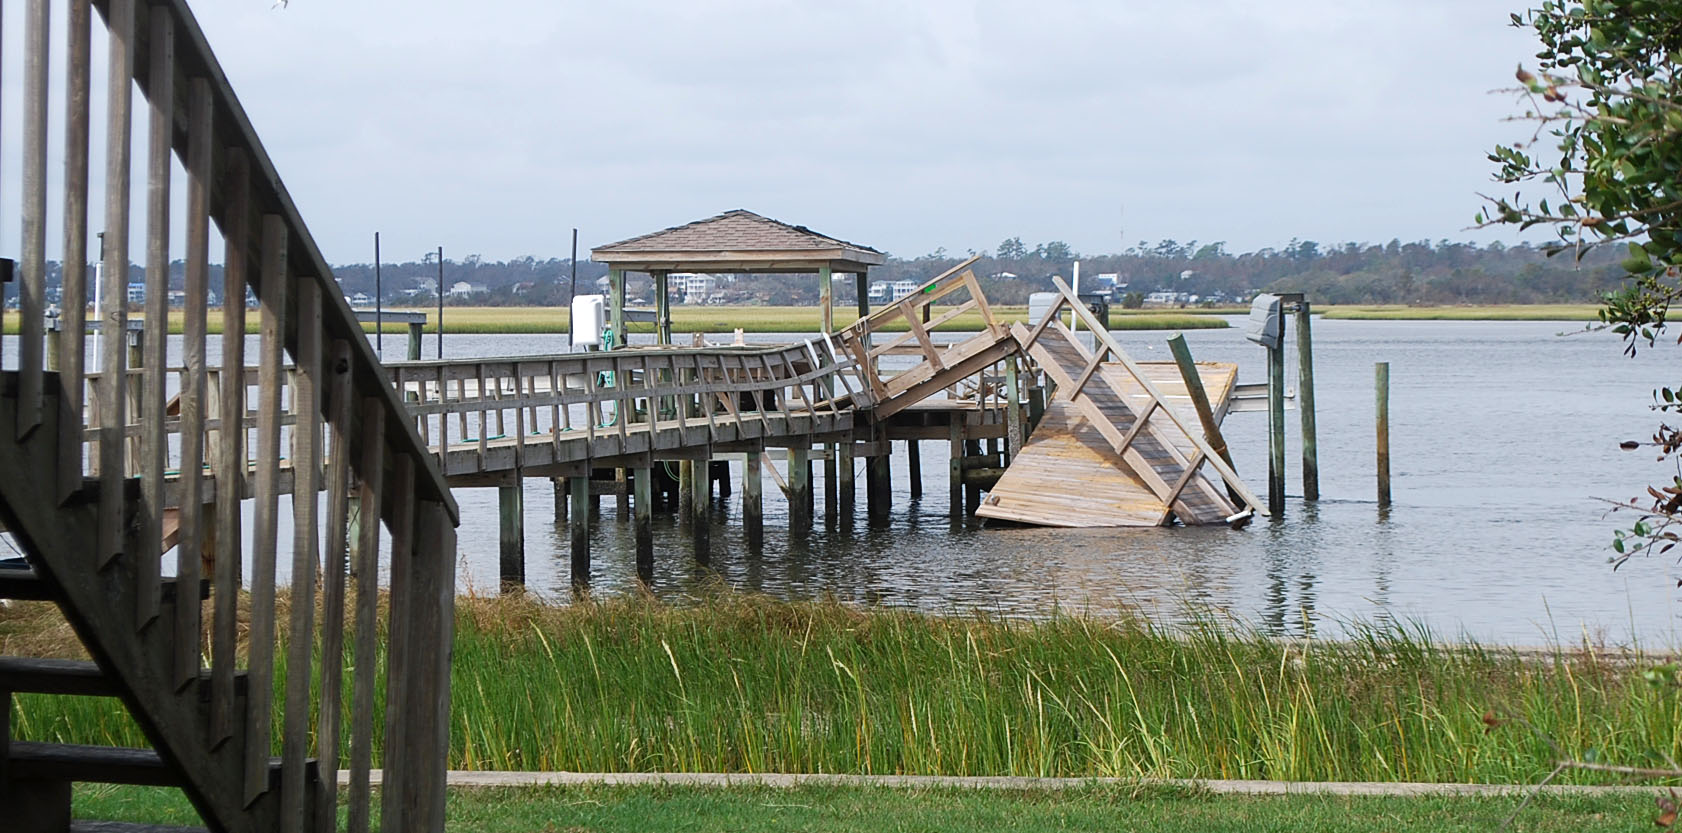 Hurricane Florence Aftermath At Topsail Island, NC